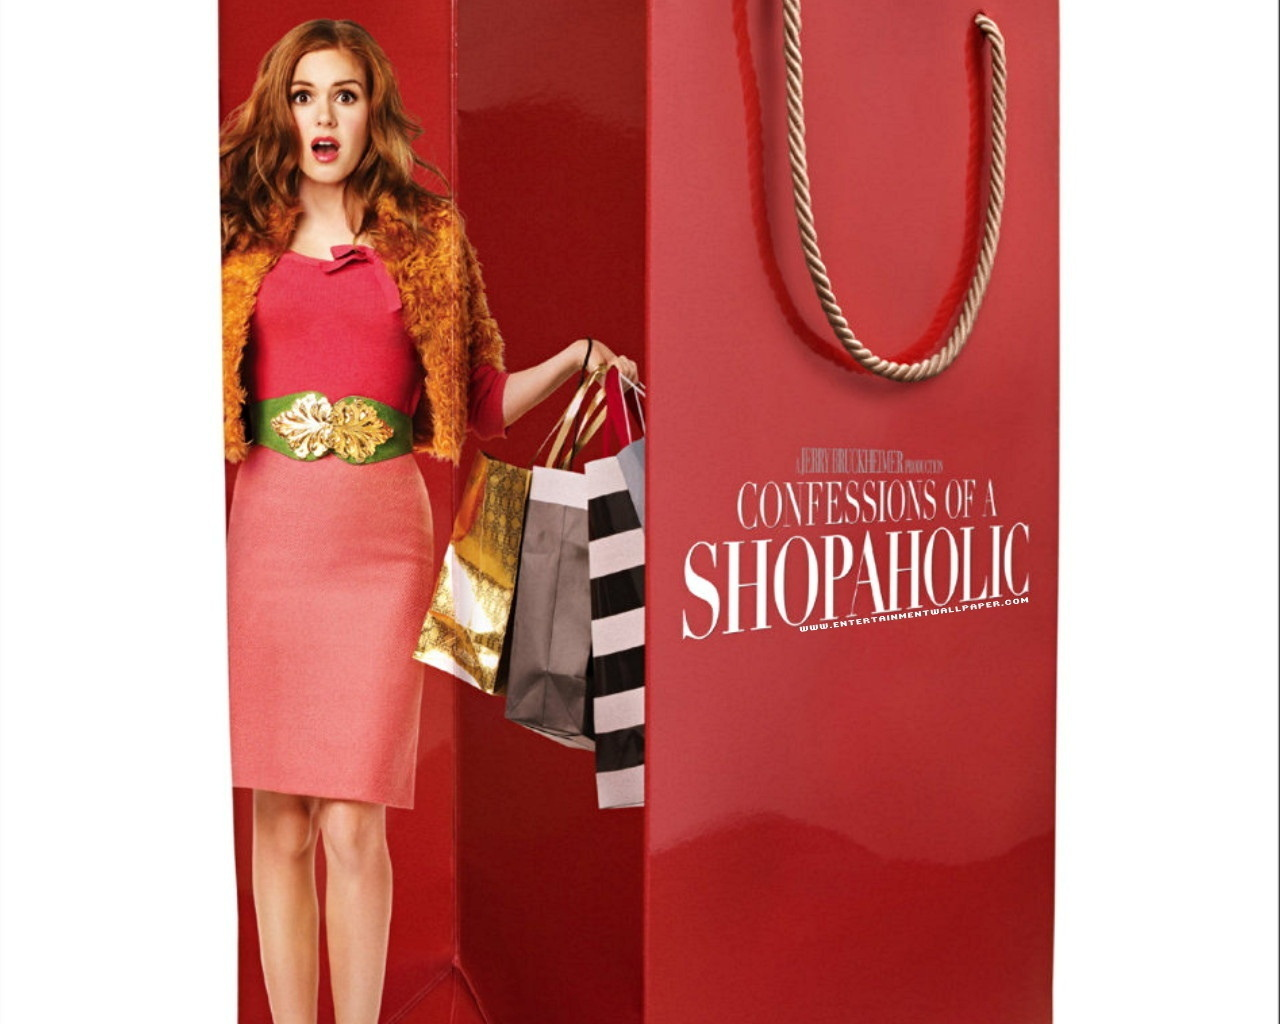 confessions of a shopaholic movies photo 10415397 fanpop